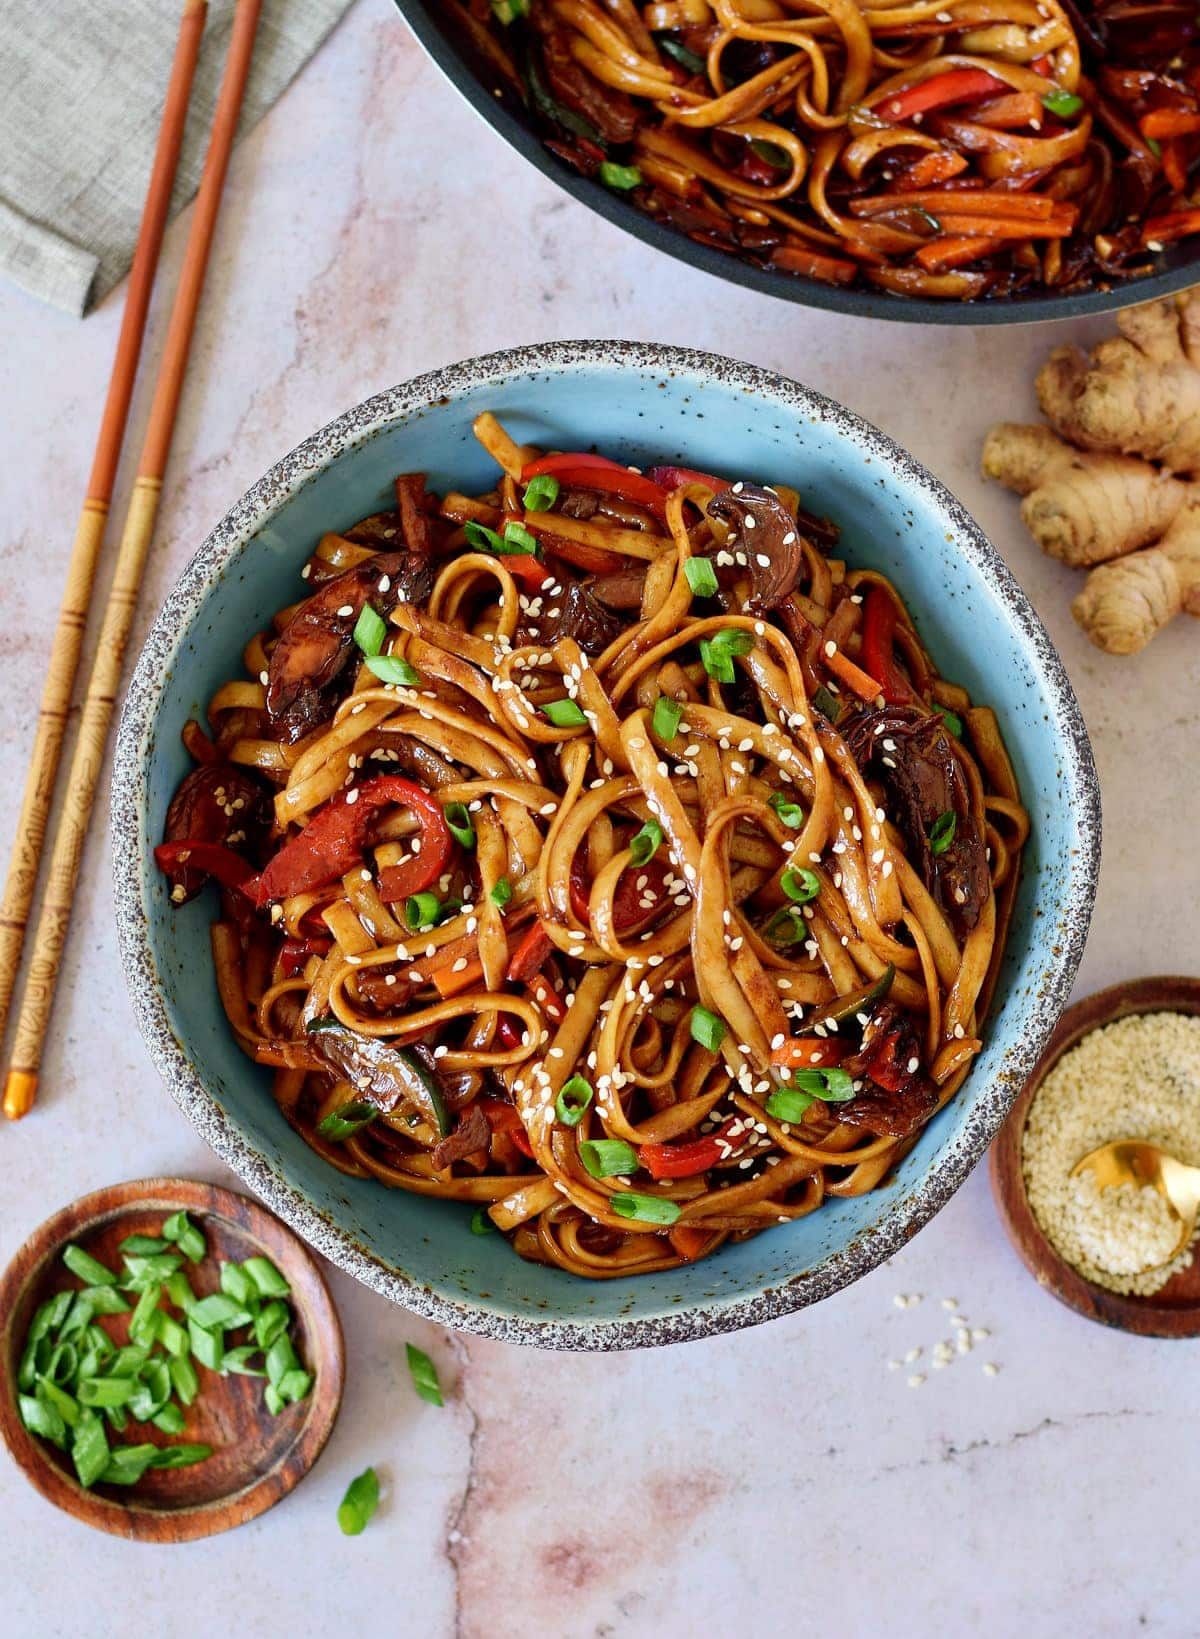 vegetable stir fry noodles in bowl